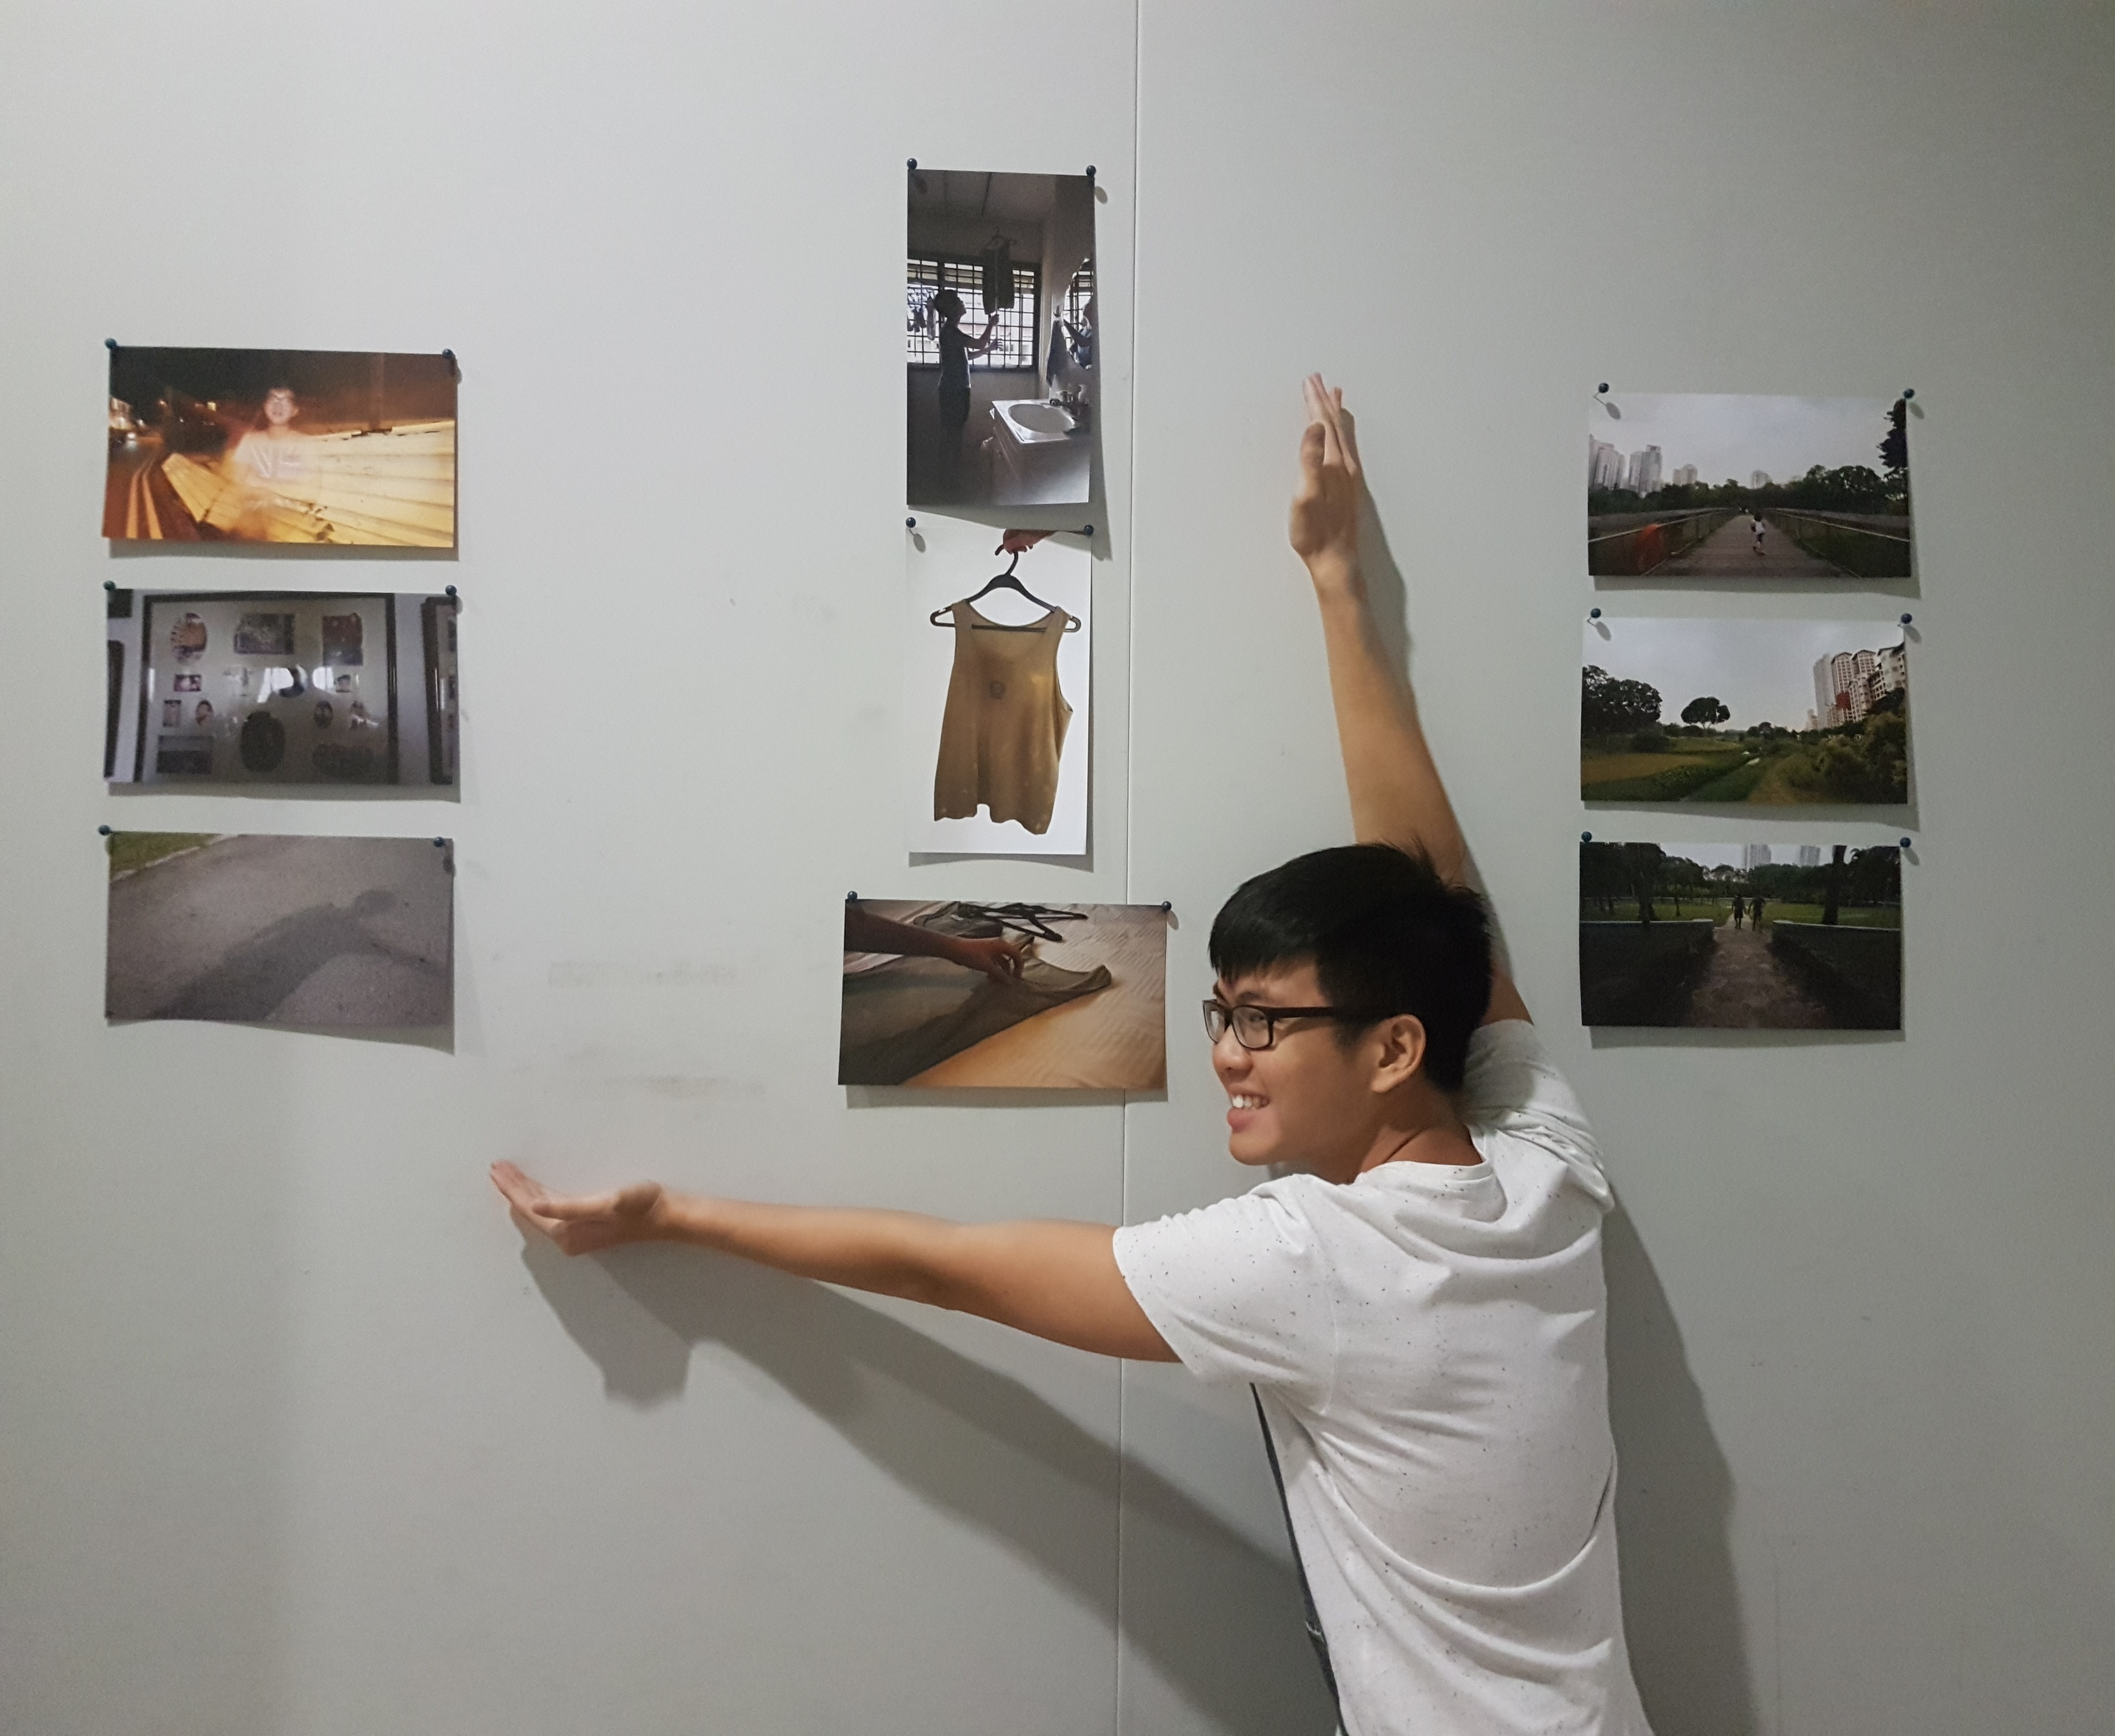 Project 1: Picture Story – Curating Self